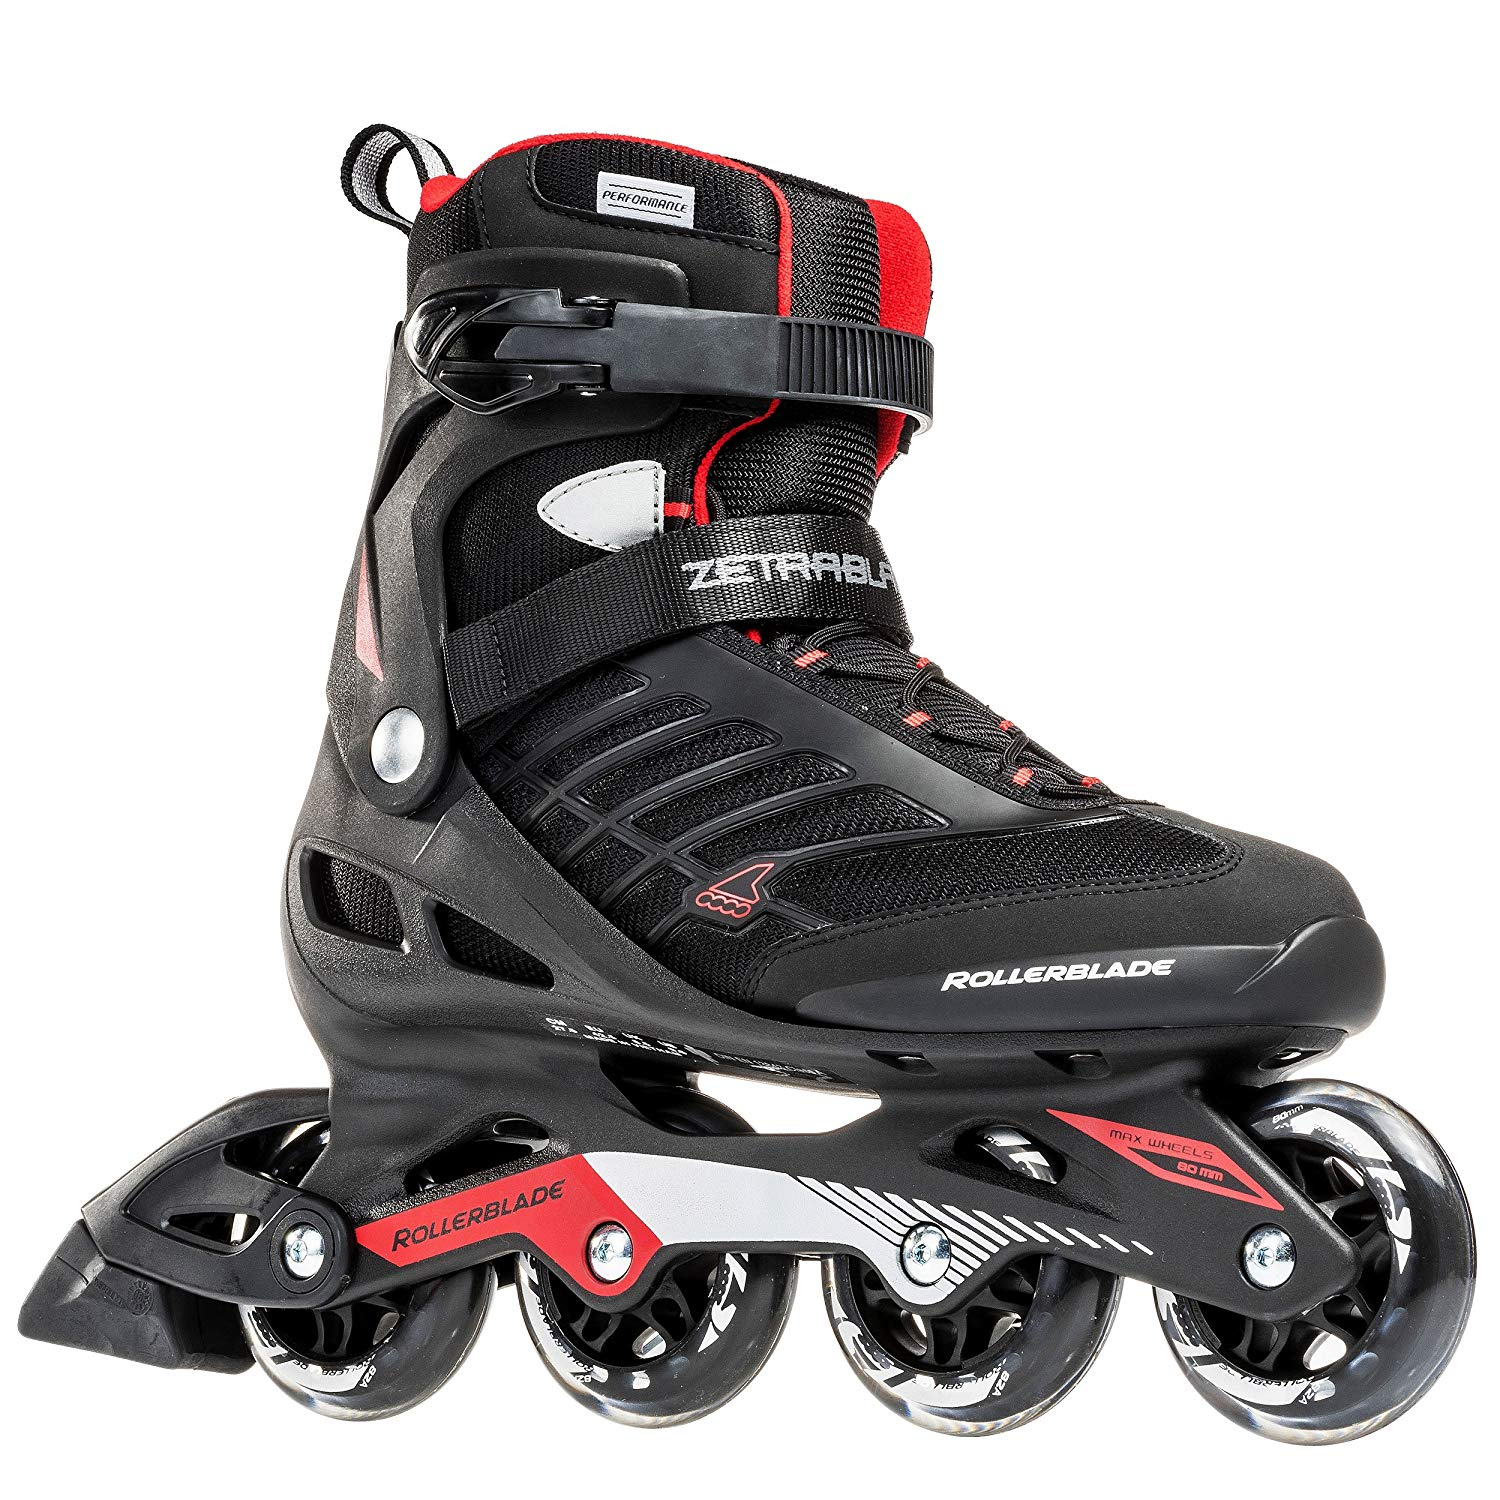 Best Inline Skates For Beginners 2020